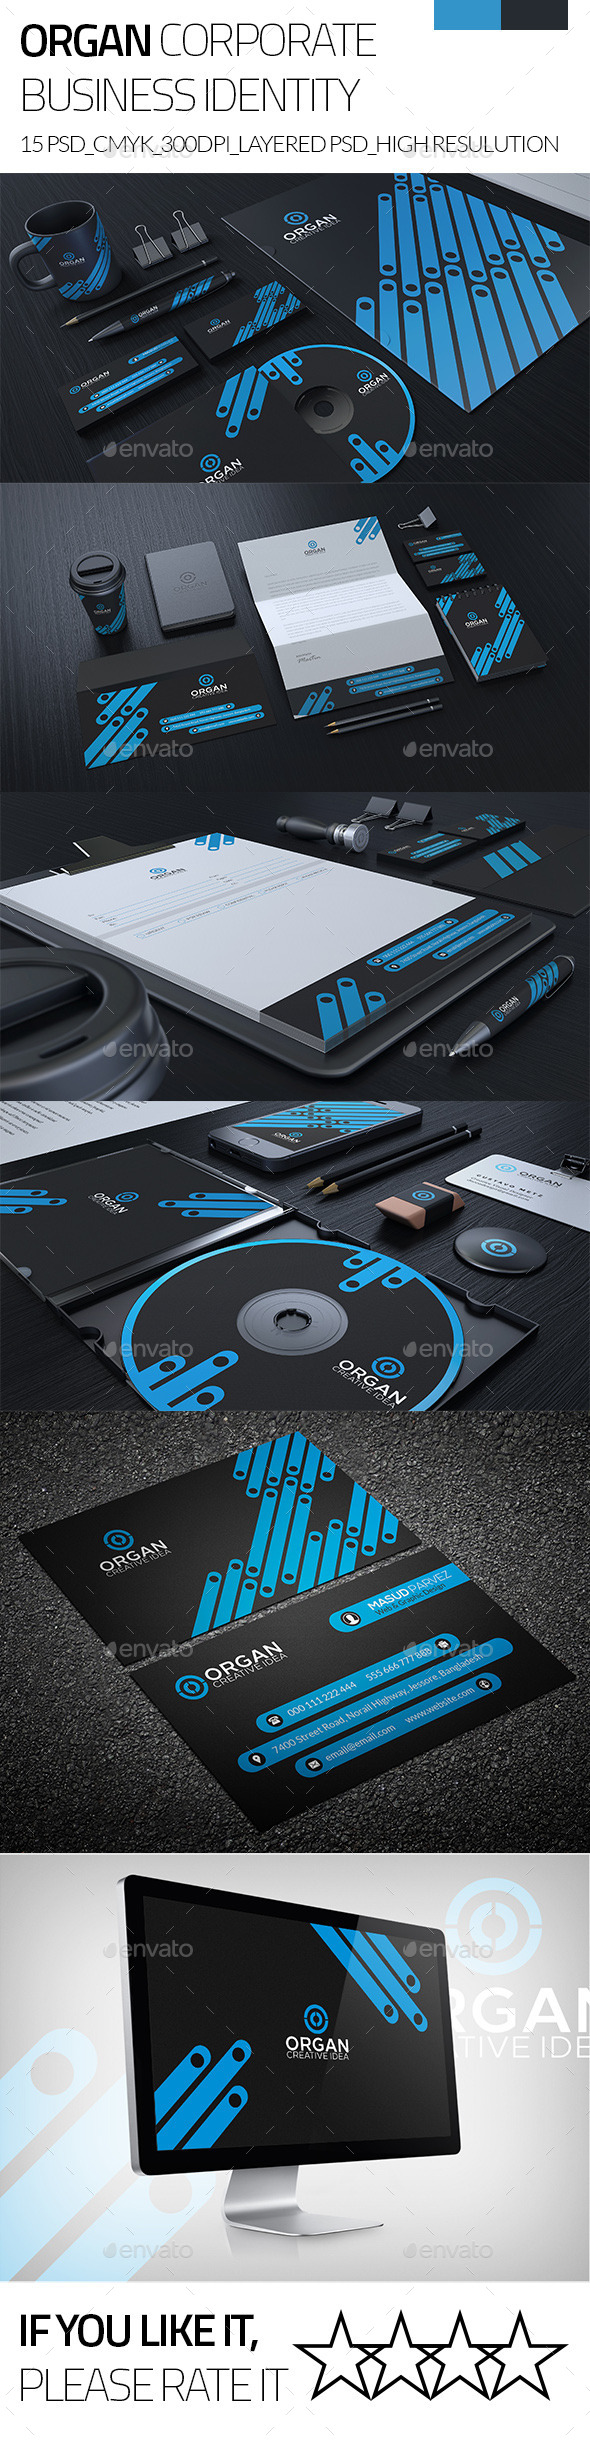 GraphicRiver Organ Corporate Business Stationary Identity 9384517